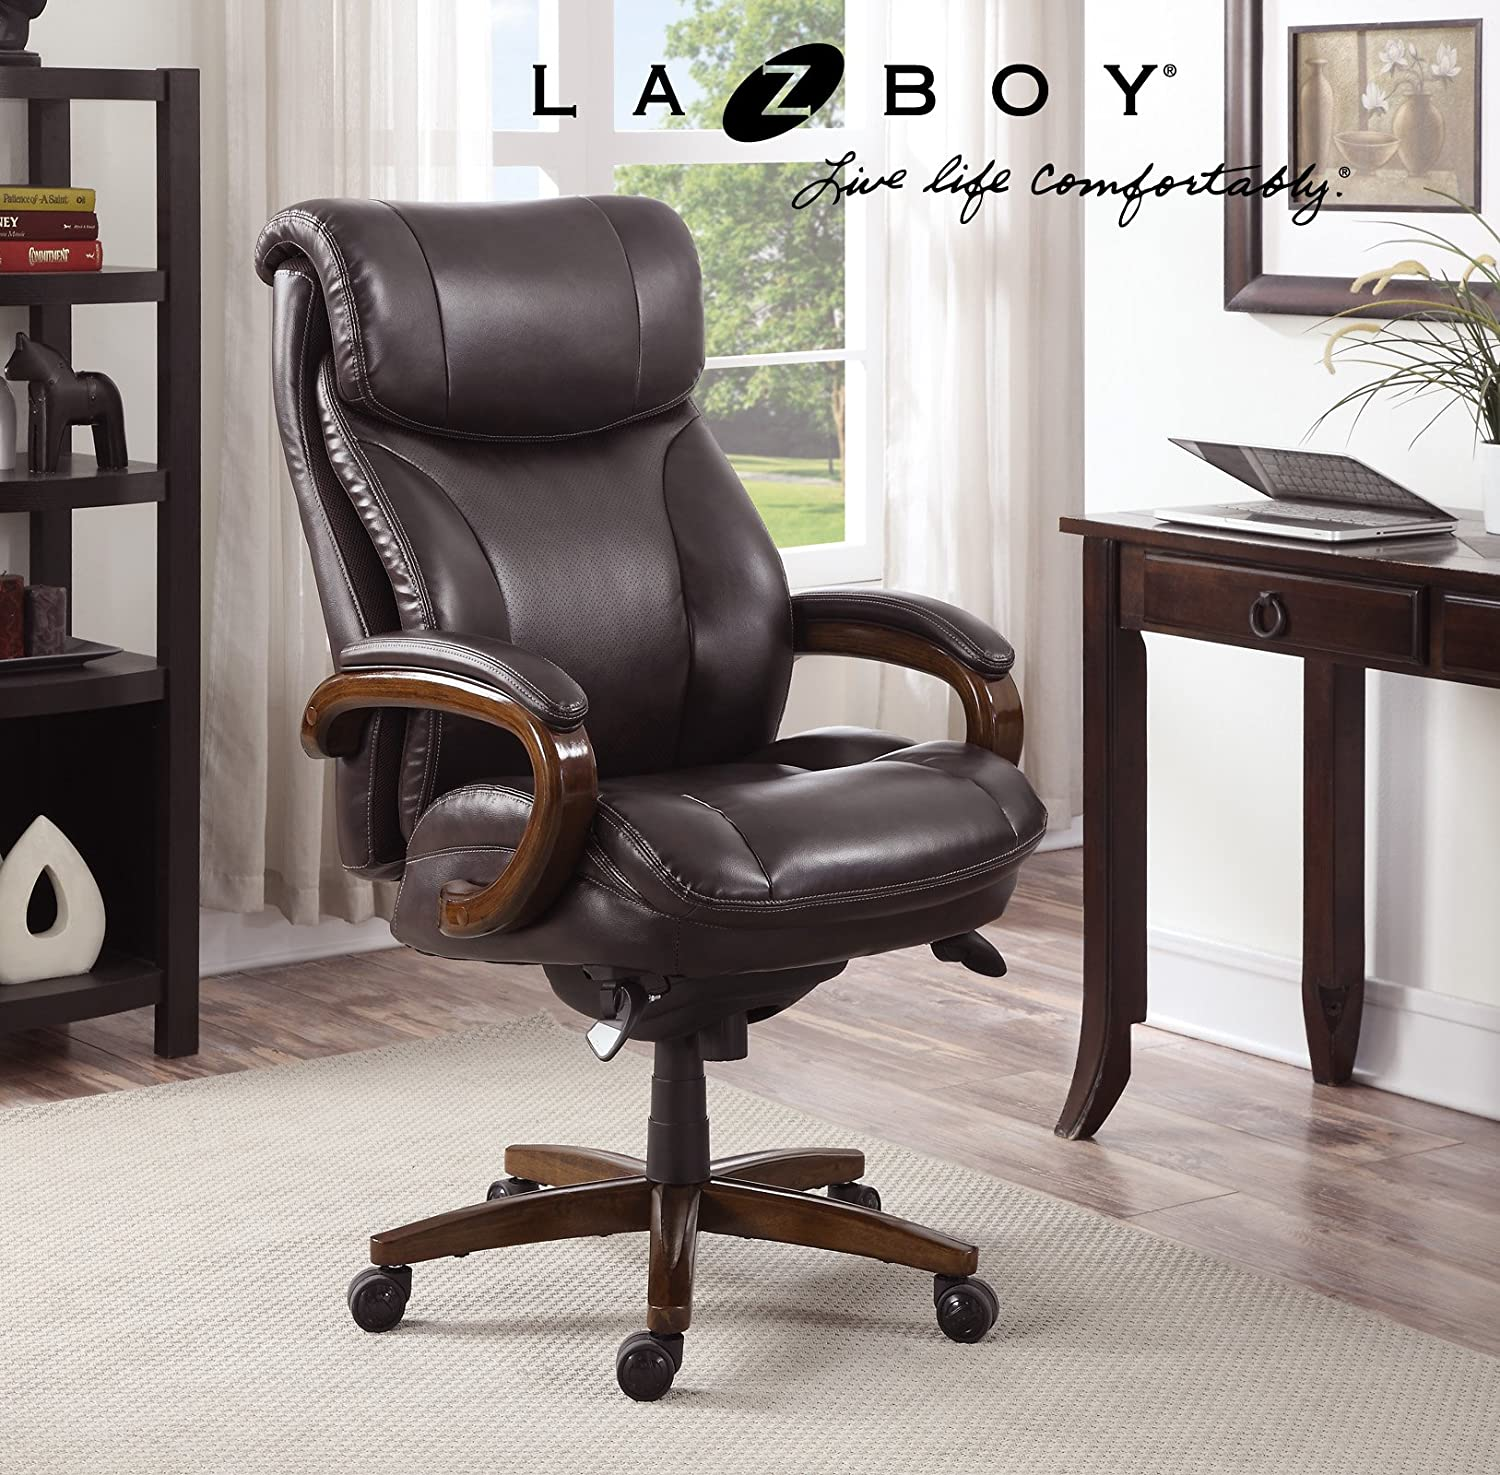 Amazon La Z Boy Trafford Big & Tall Executive Bonded Leather